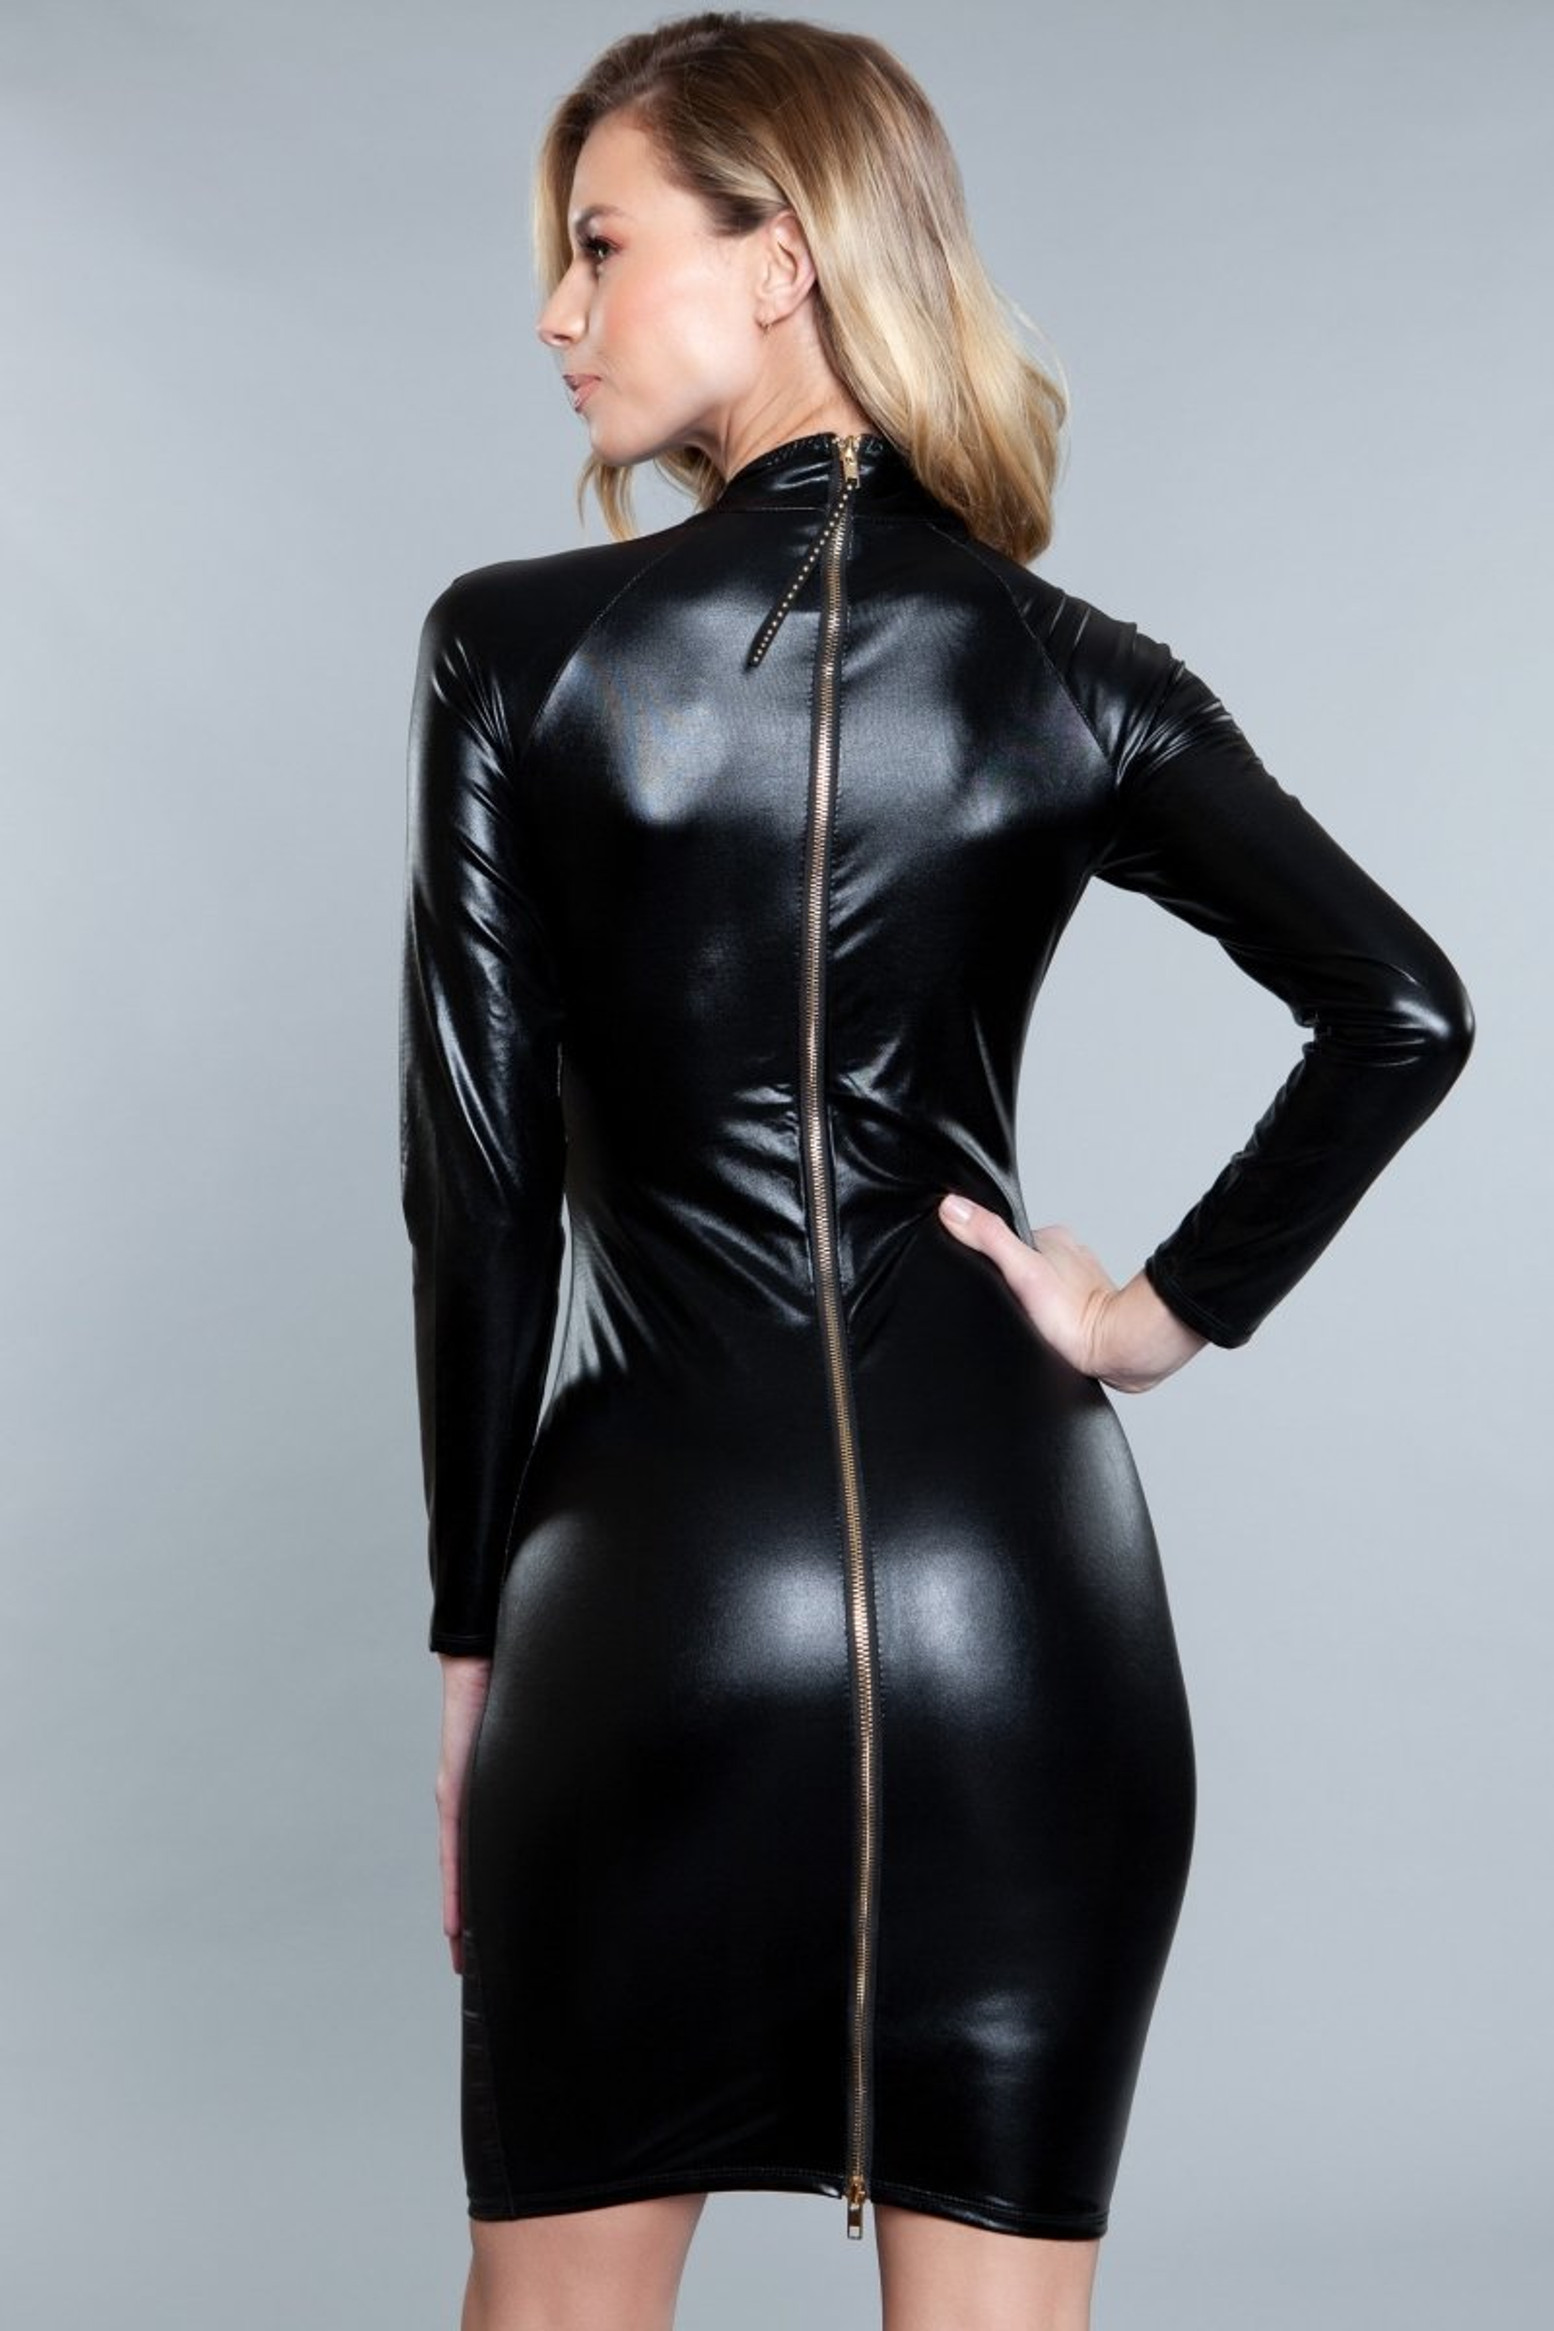 1858 Dominatrix Dress